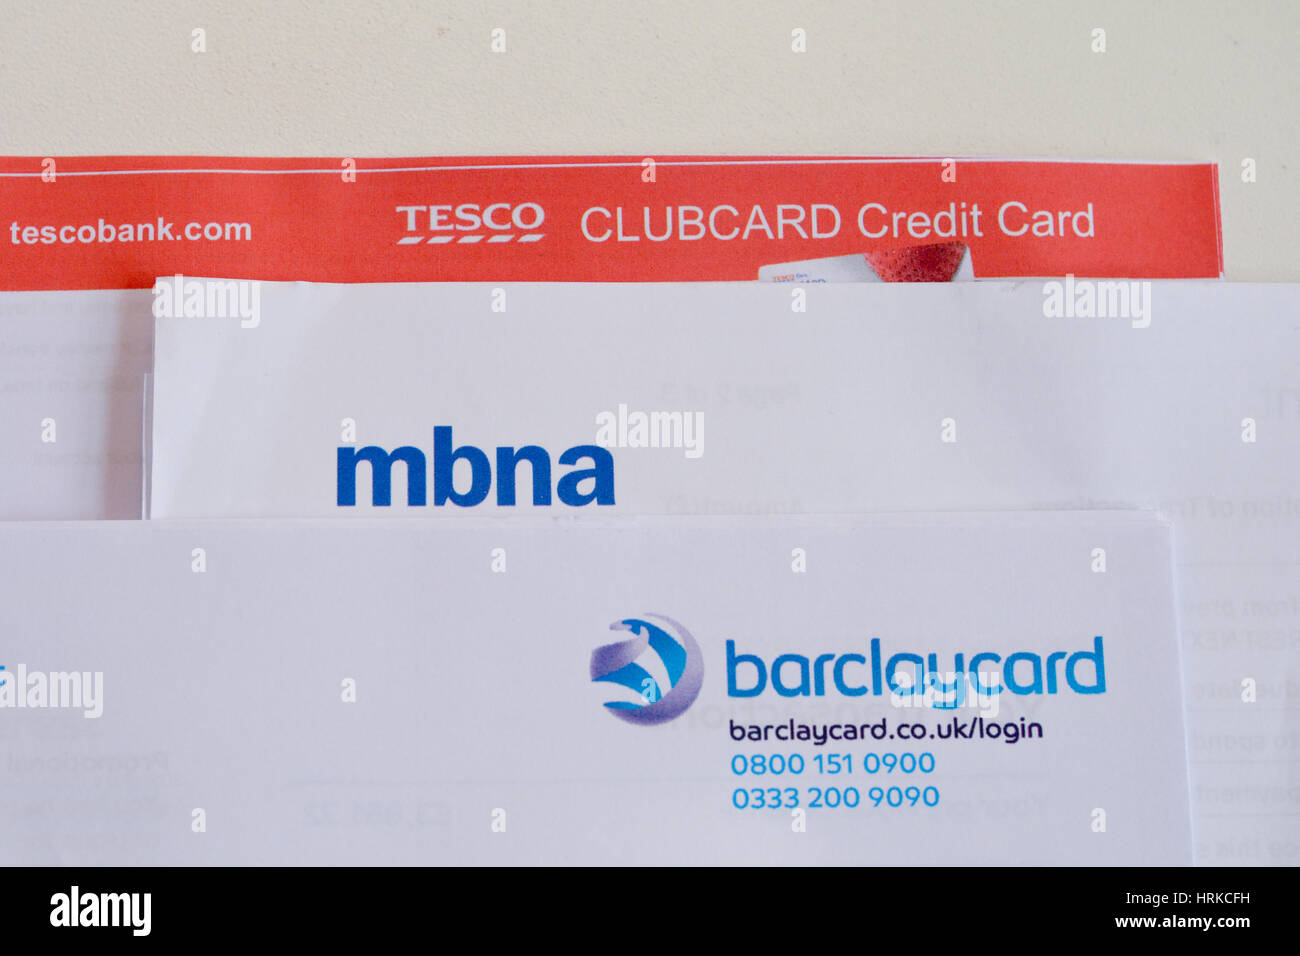 Tesco bank stock photos tesco bank stock images alamy stack of credit card statements including tesco bank barclaycard and mbna indicative of the colourmoves Images